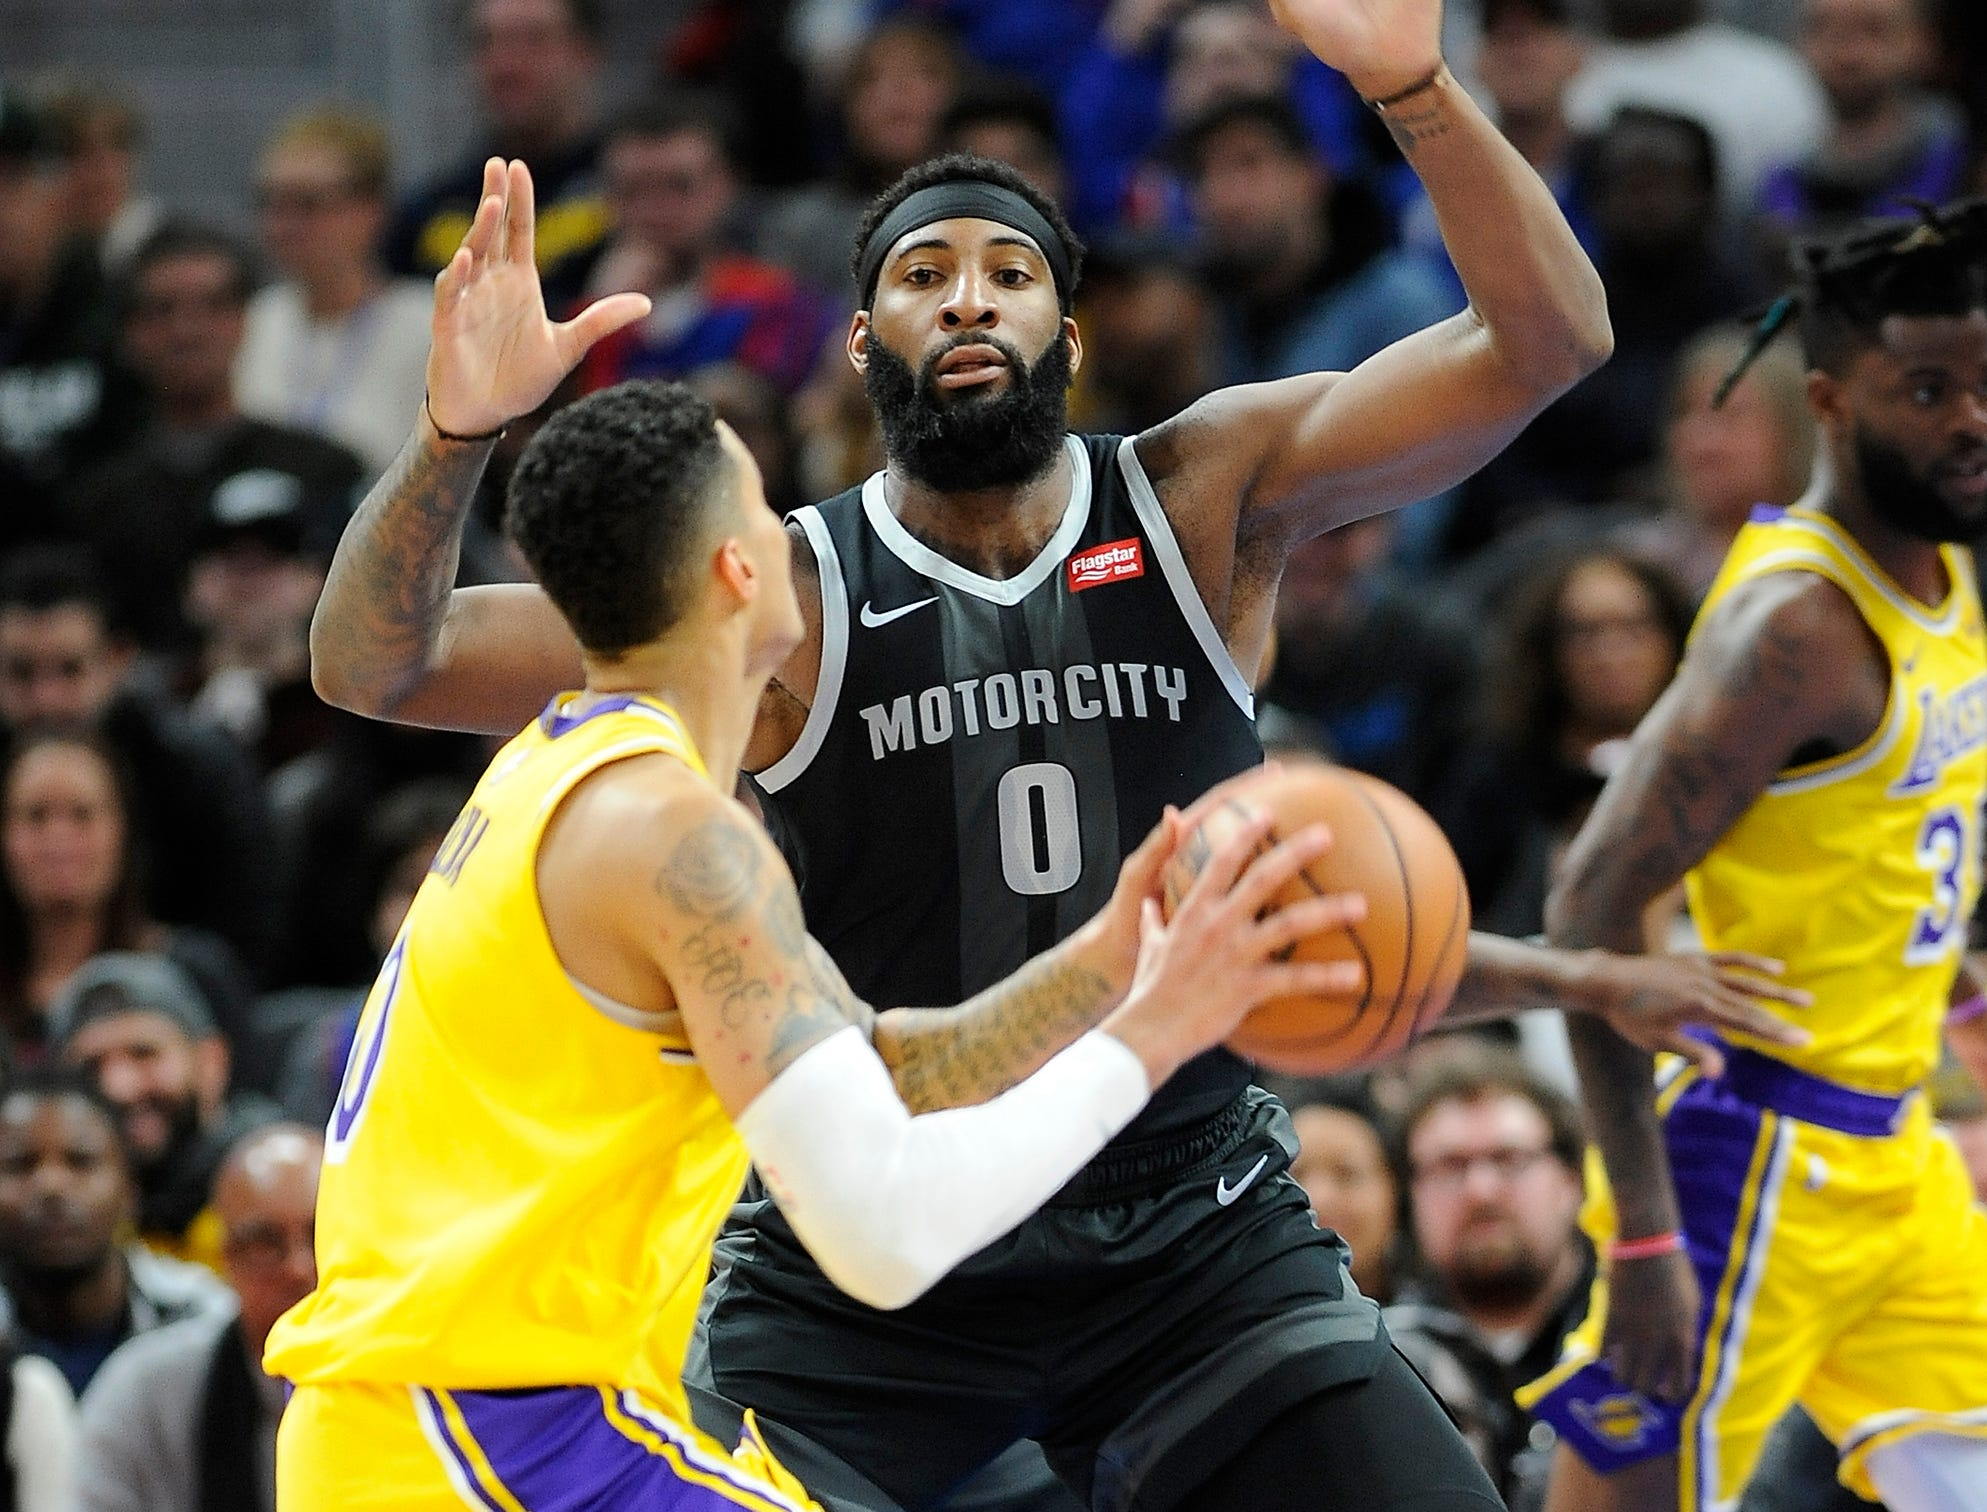 Pistons' Andre Drummond defends Lakers' Kyle Kuzman in the second quarter.